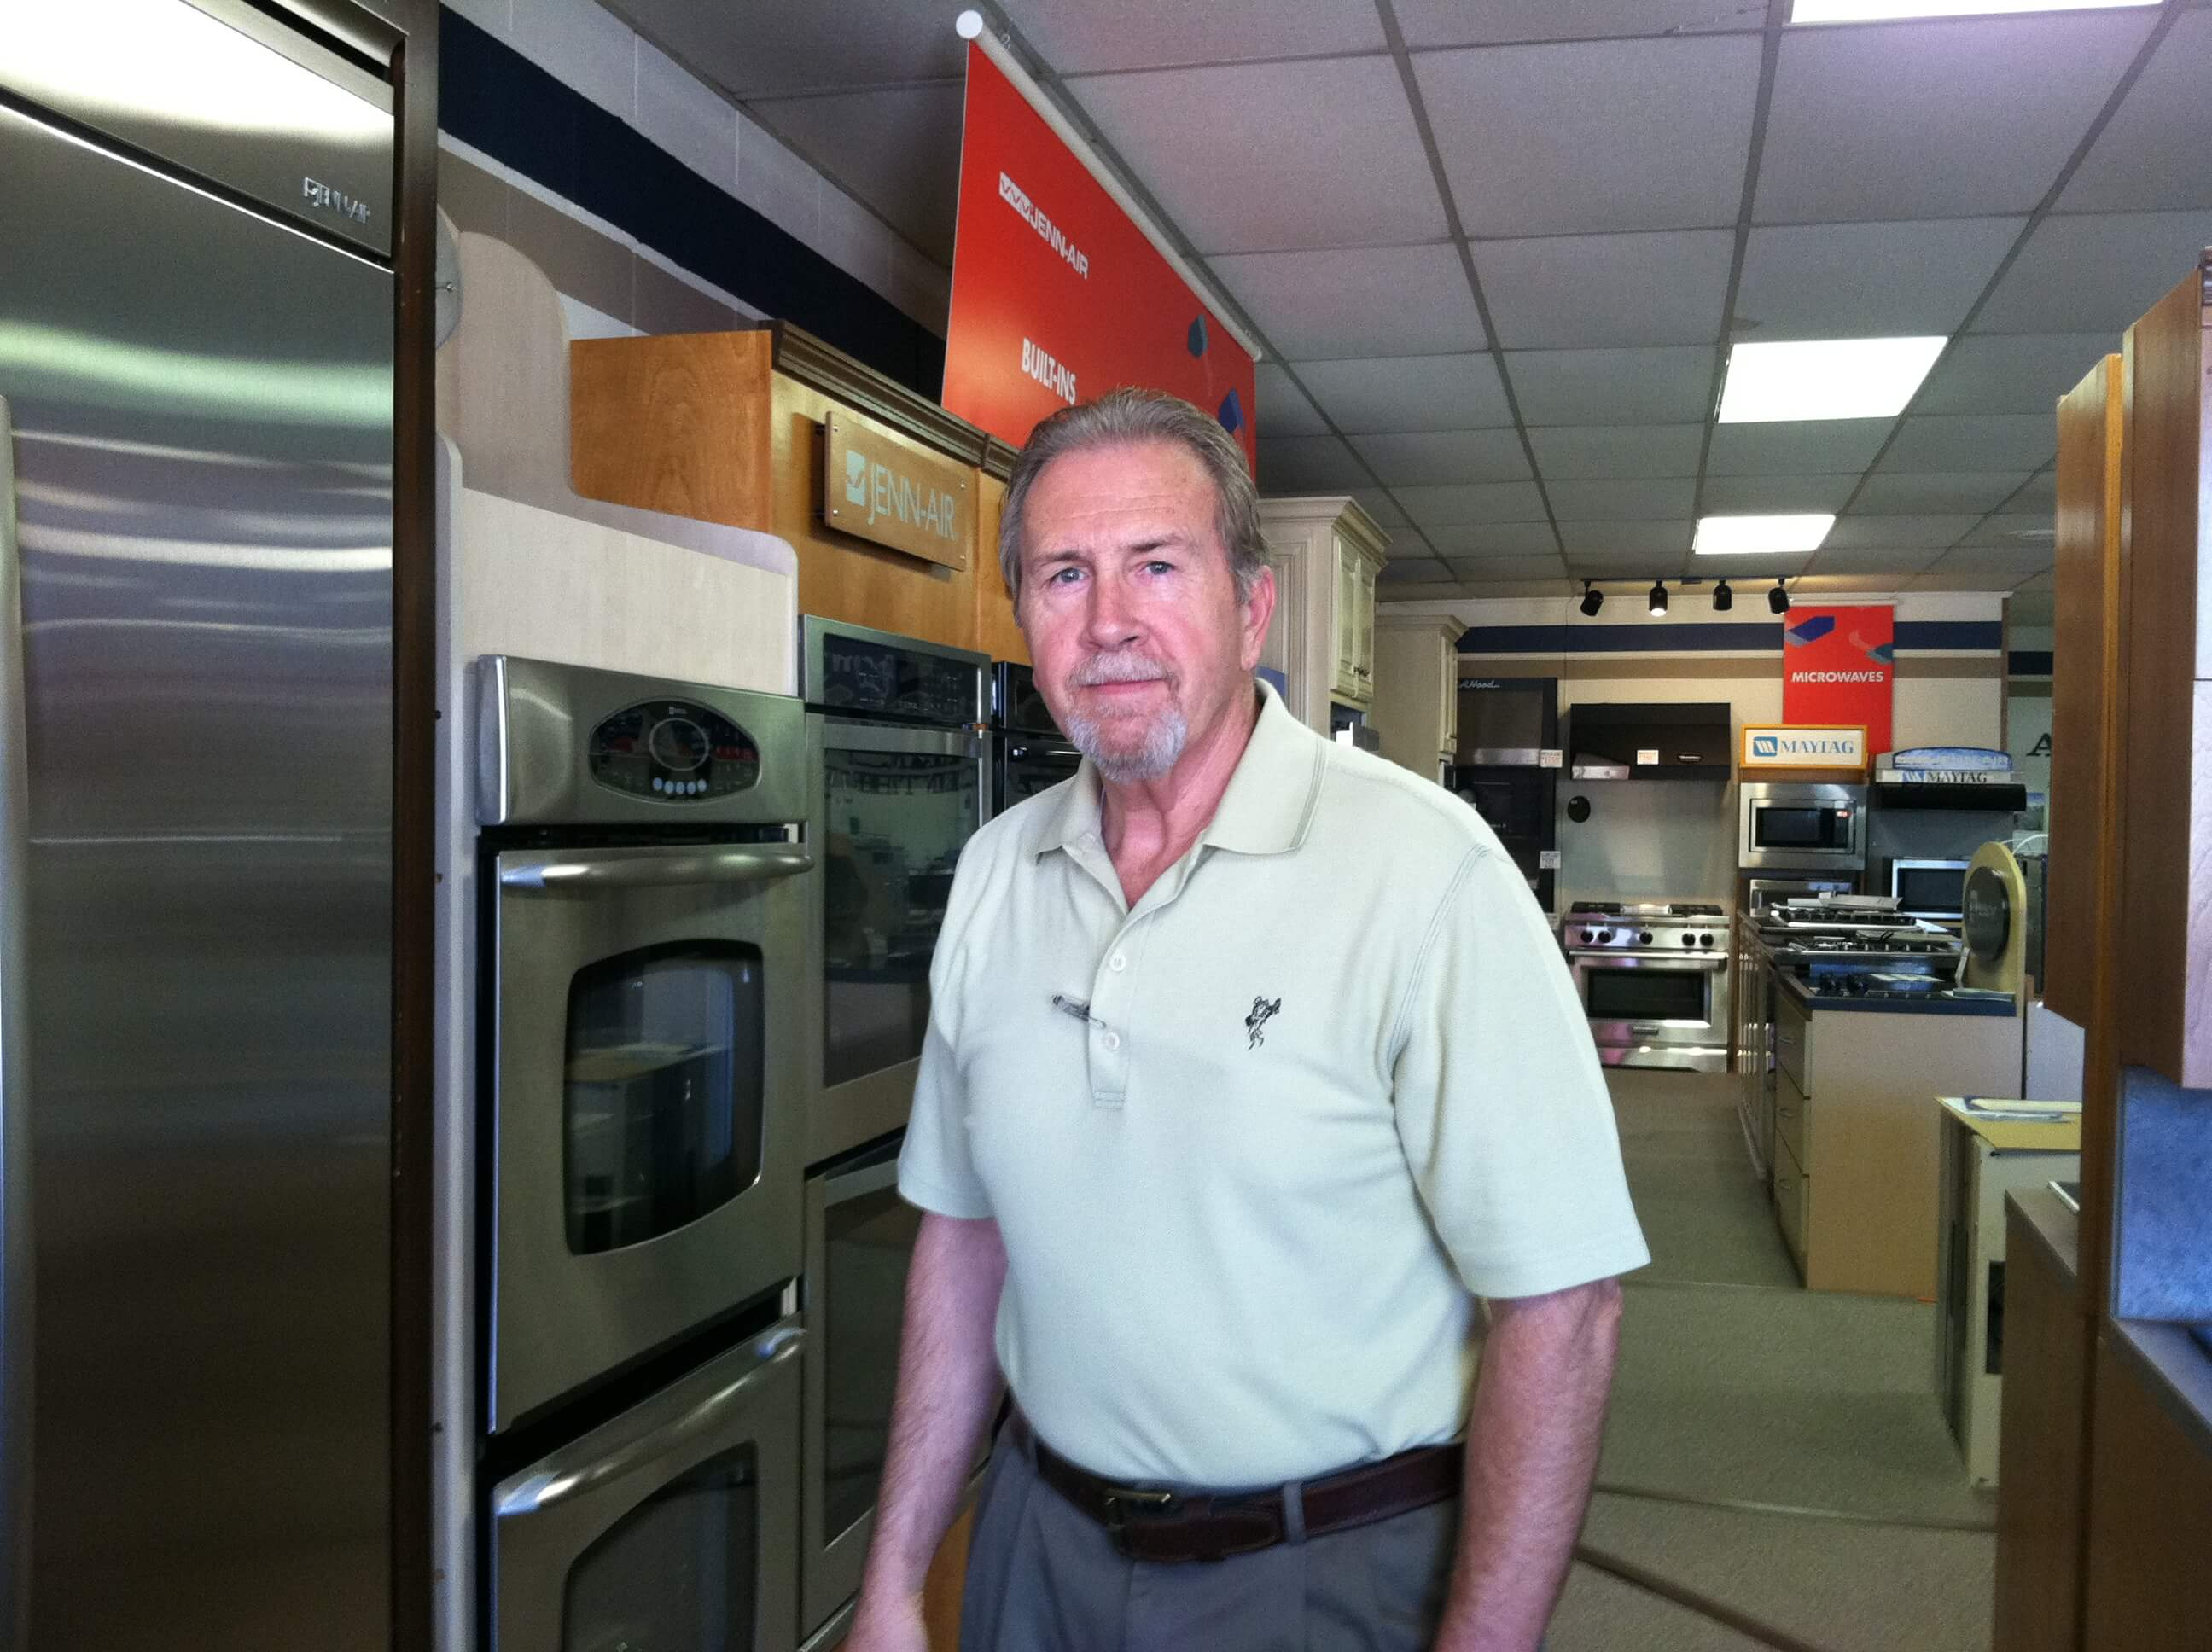 Mike Eaton, Owner